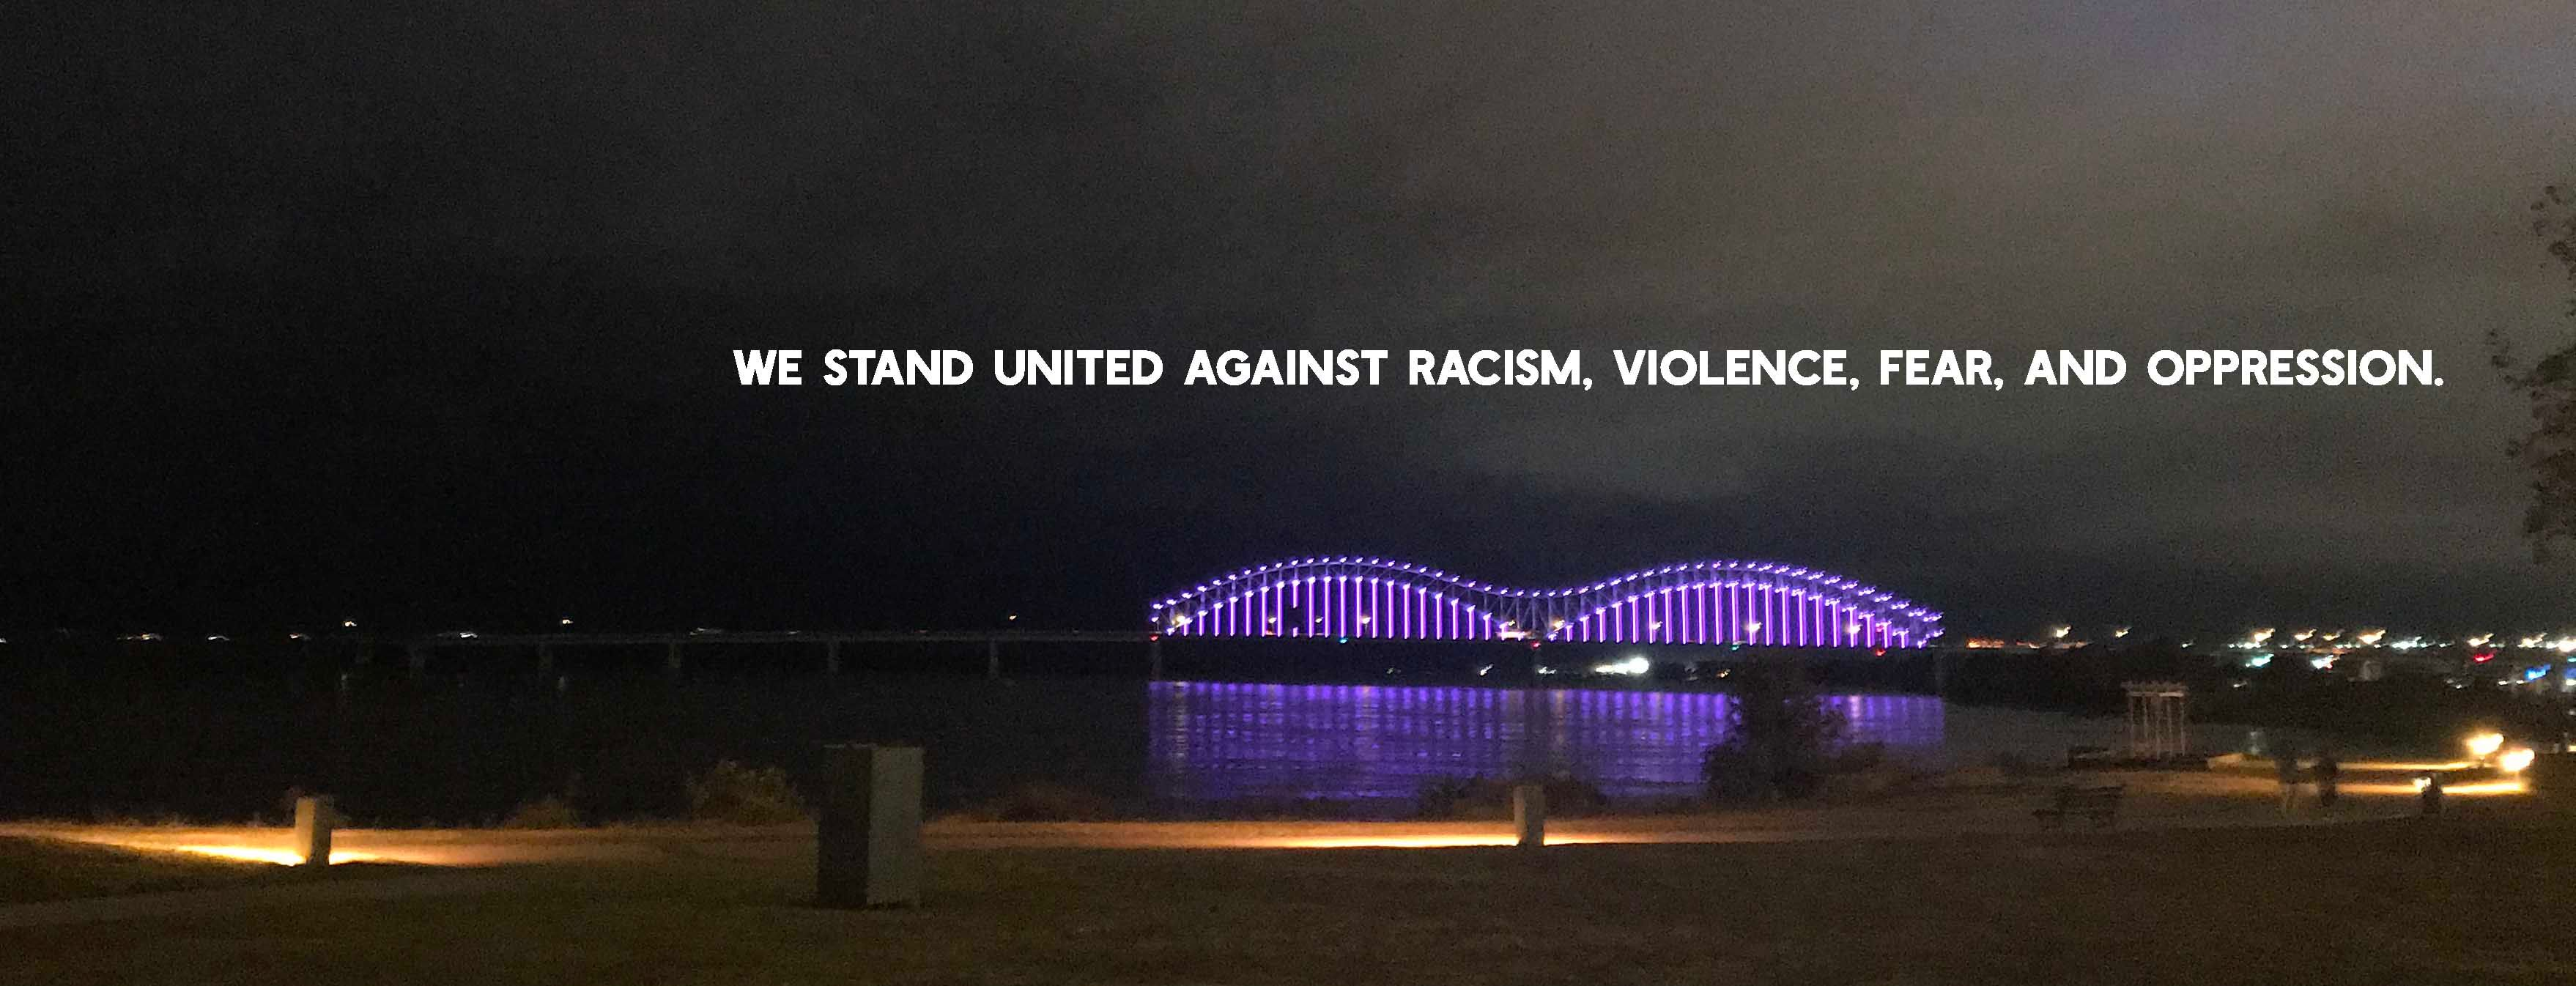 Stand against racism, violence, fear, and oppression.